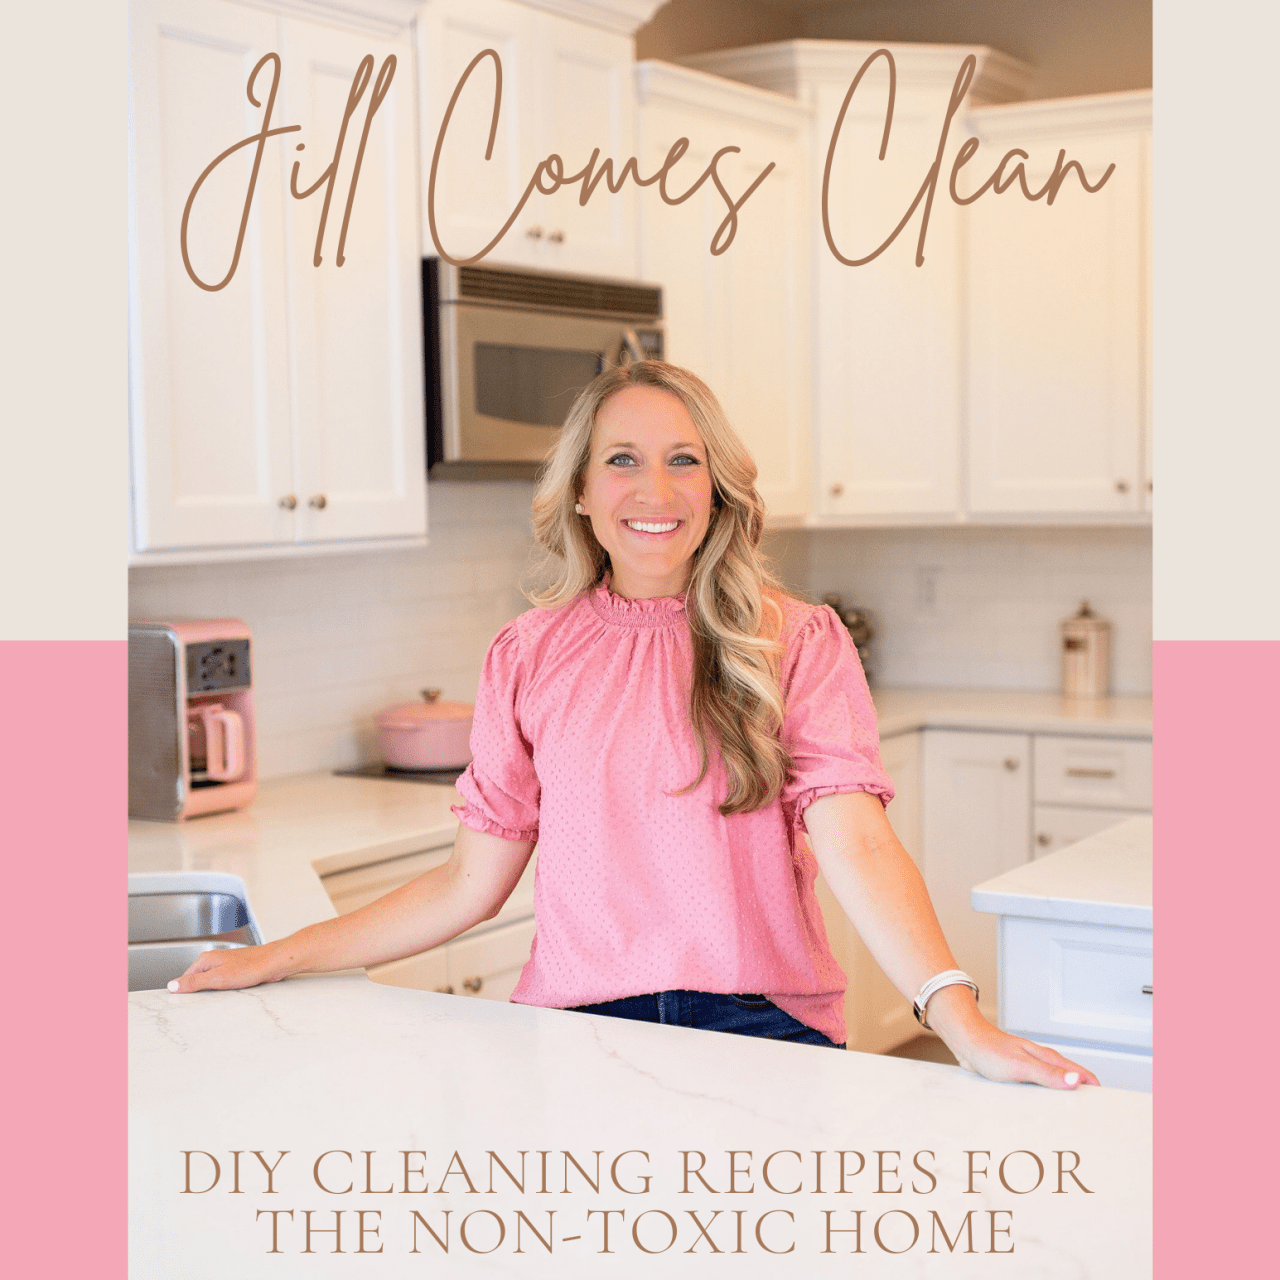 DIY CLEANING RECIPES FOR THE NON-TOXIC HOME